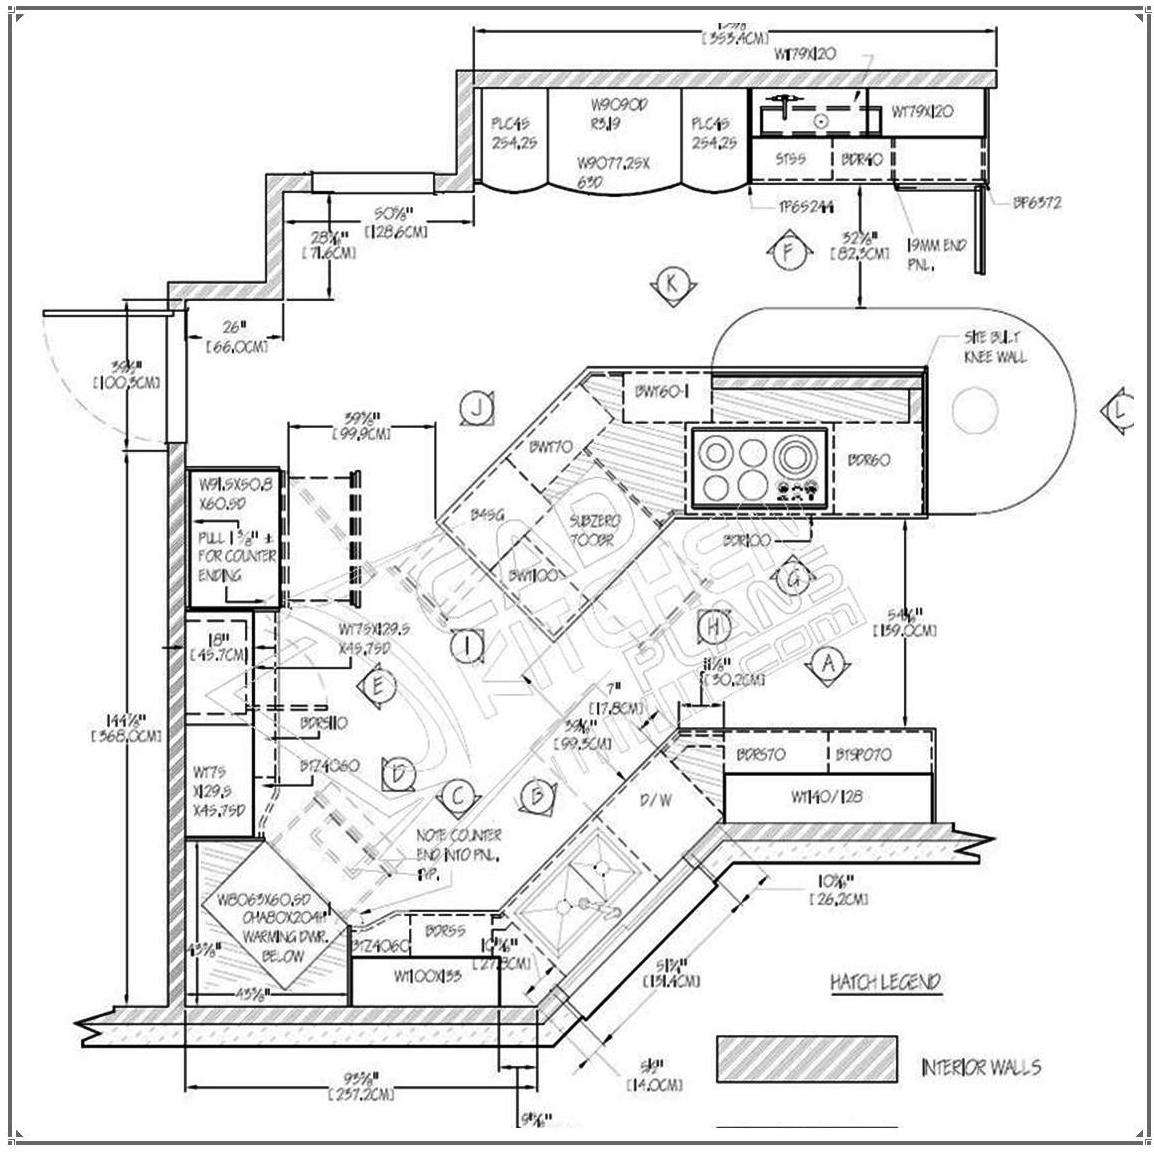 Easiest Kitchen Design Software: Kitchen Cabinet Drawing At GetDrawings.com